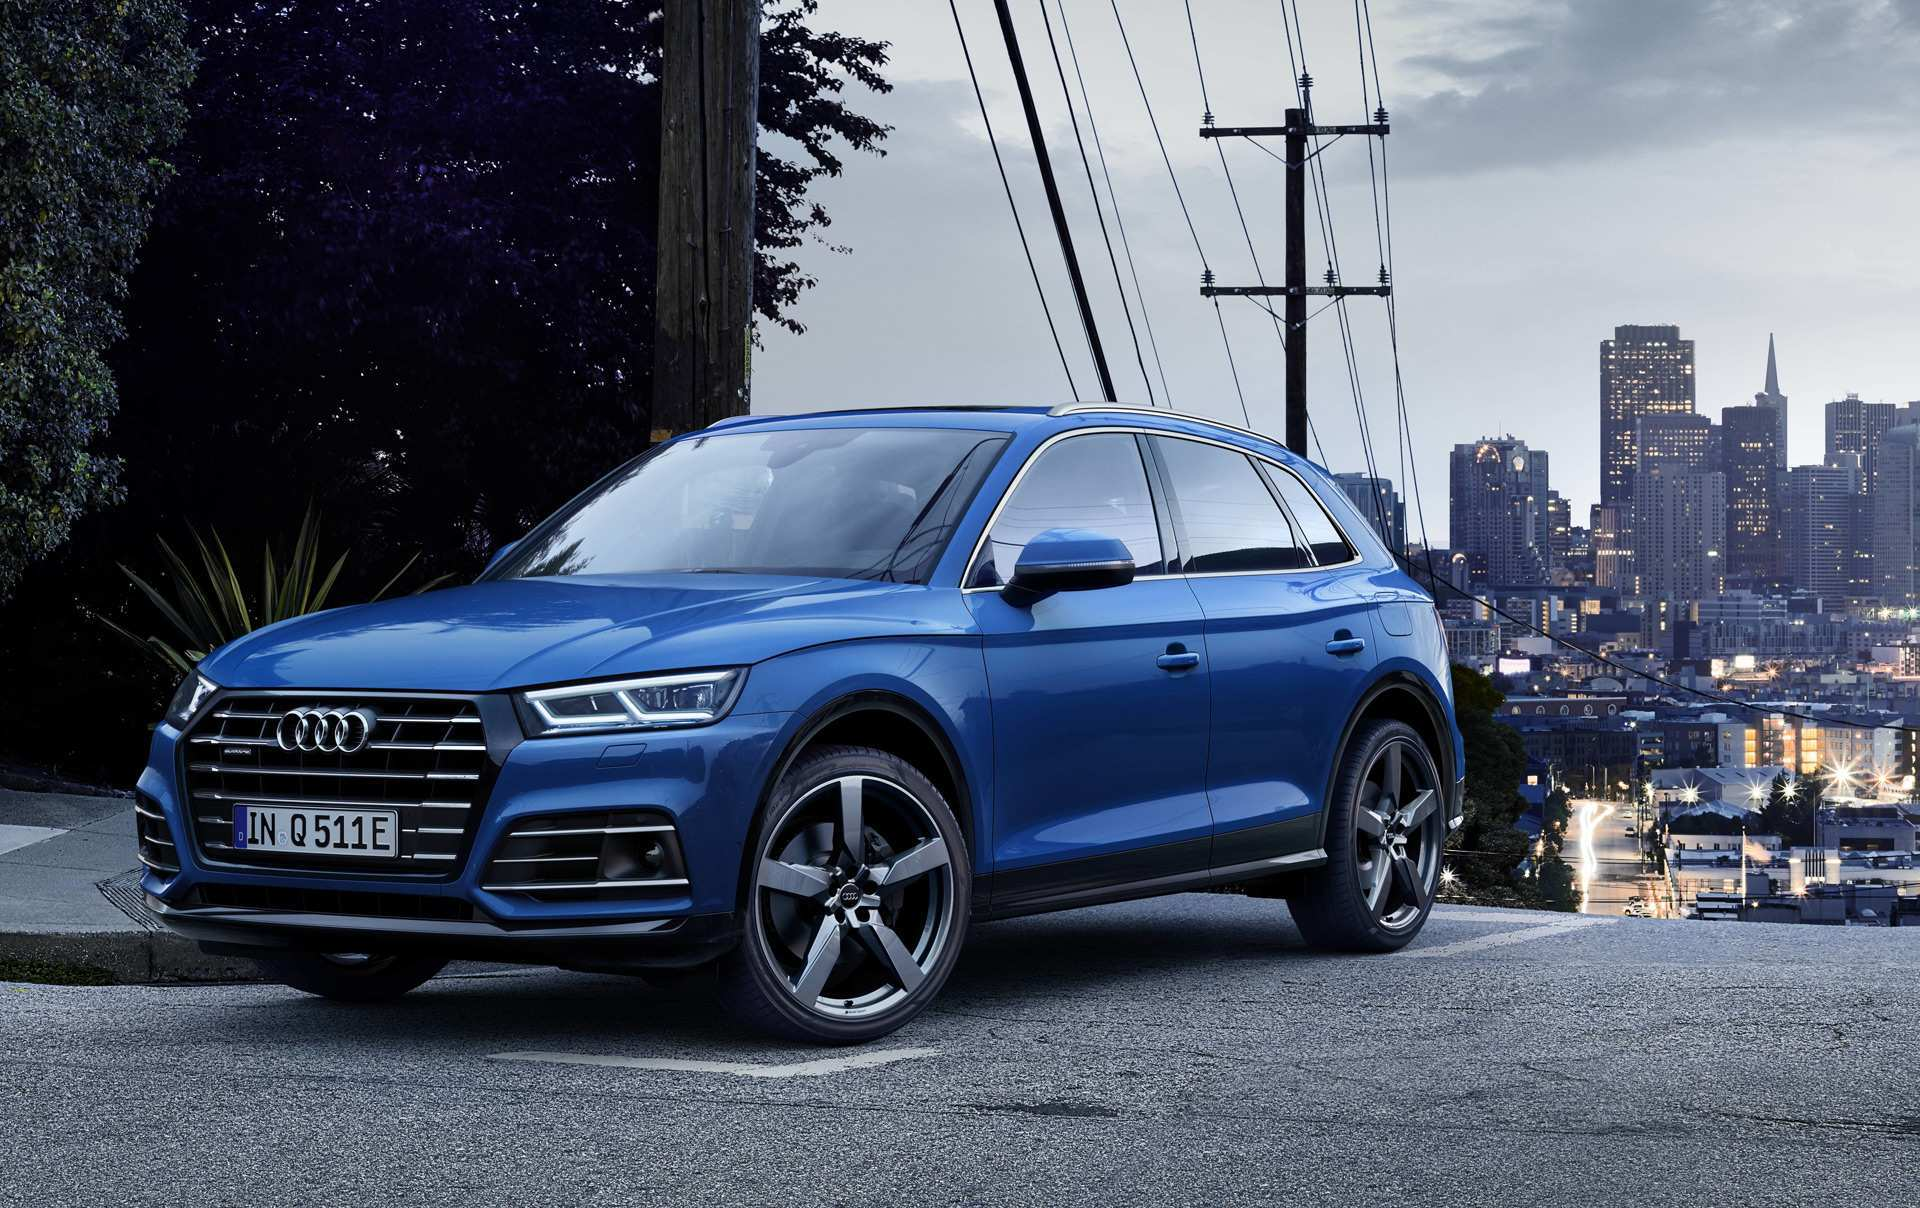 32 Best Review Audi Q5 Hybrid 2020 Configurations by Audi Q5 Hybrid 2020